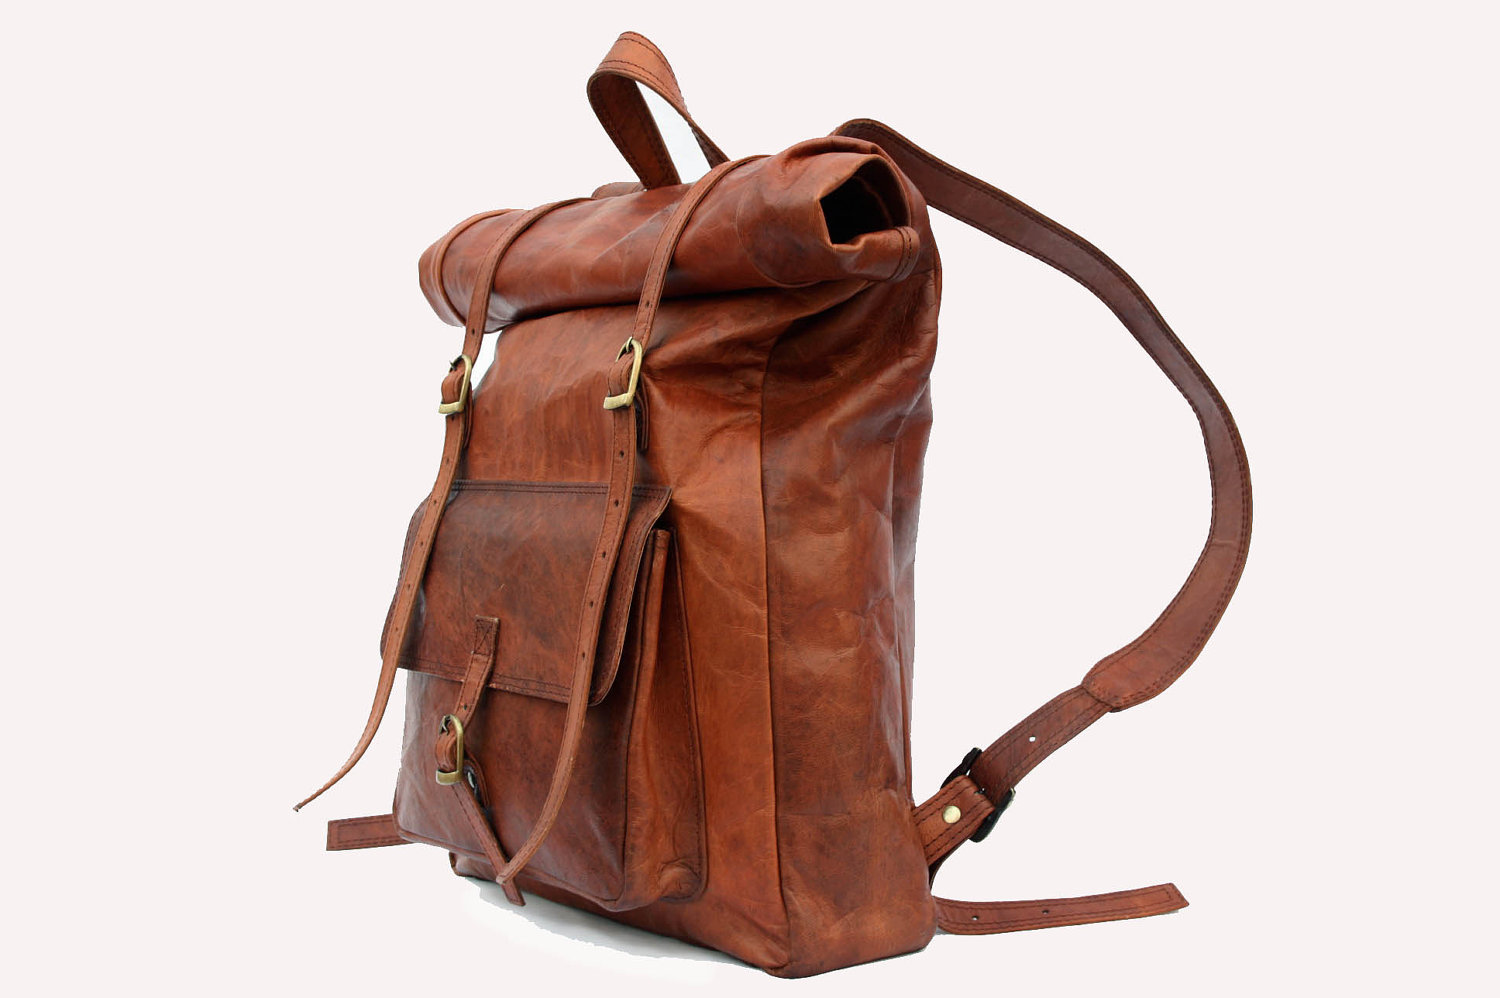 Leather Rucksack Backpack s1G5KdLb